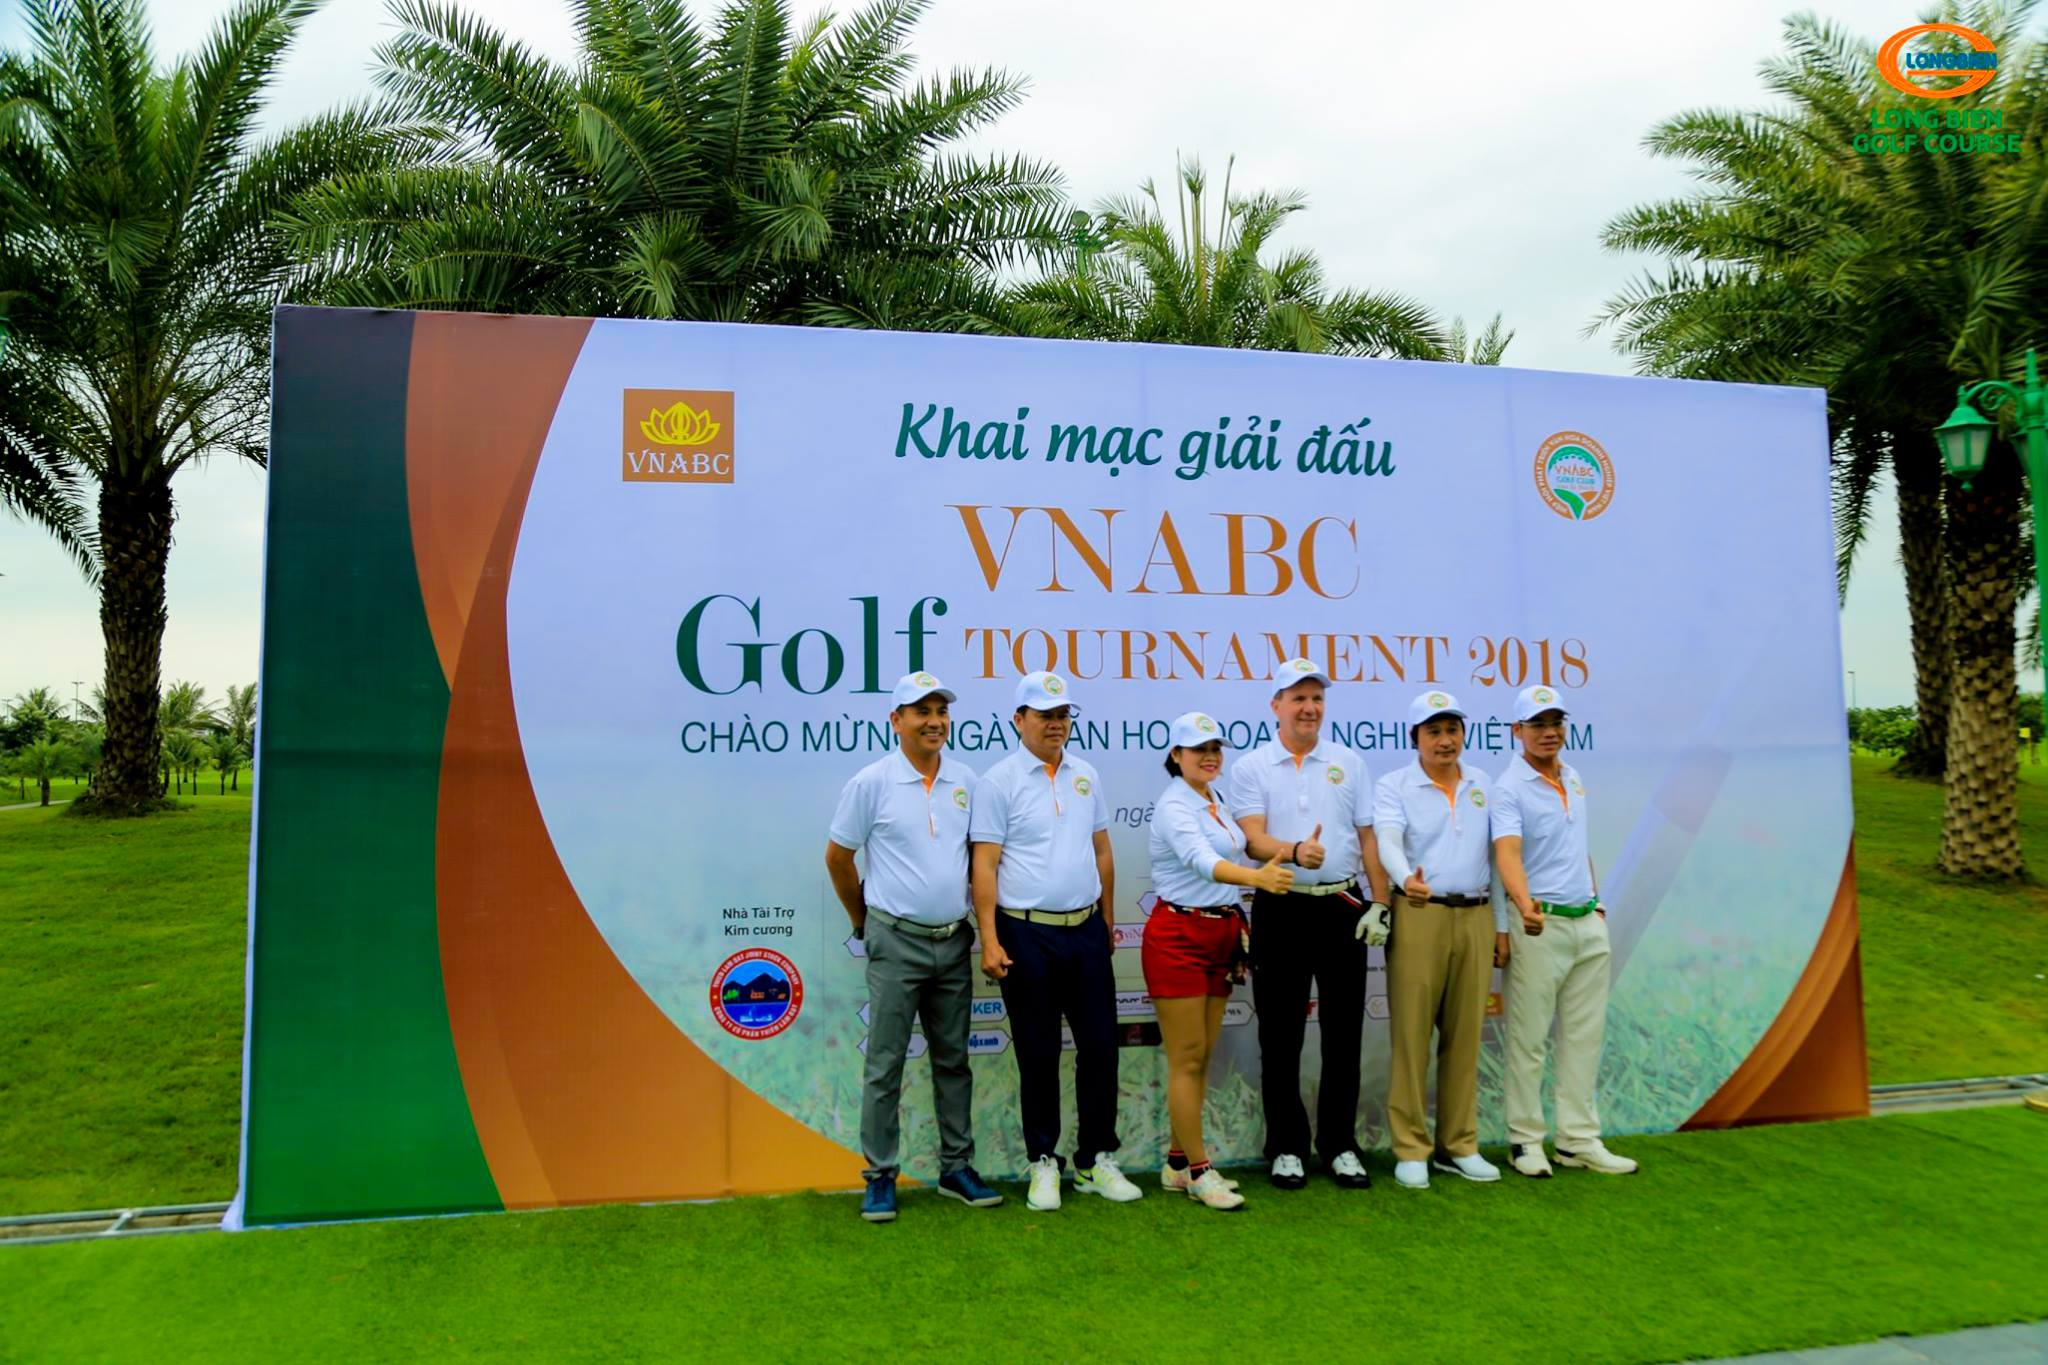 Giải golf VNABC Golf Tournament 2018